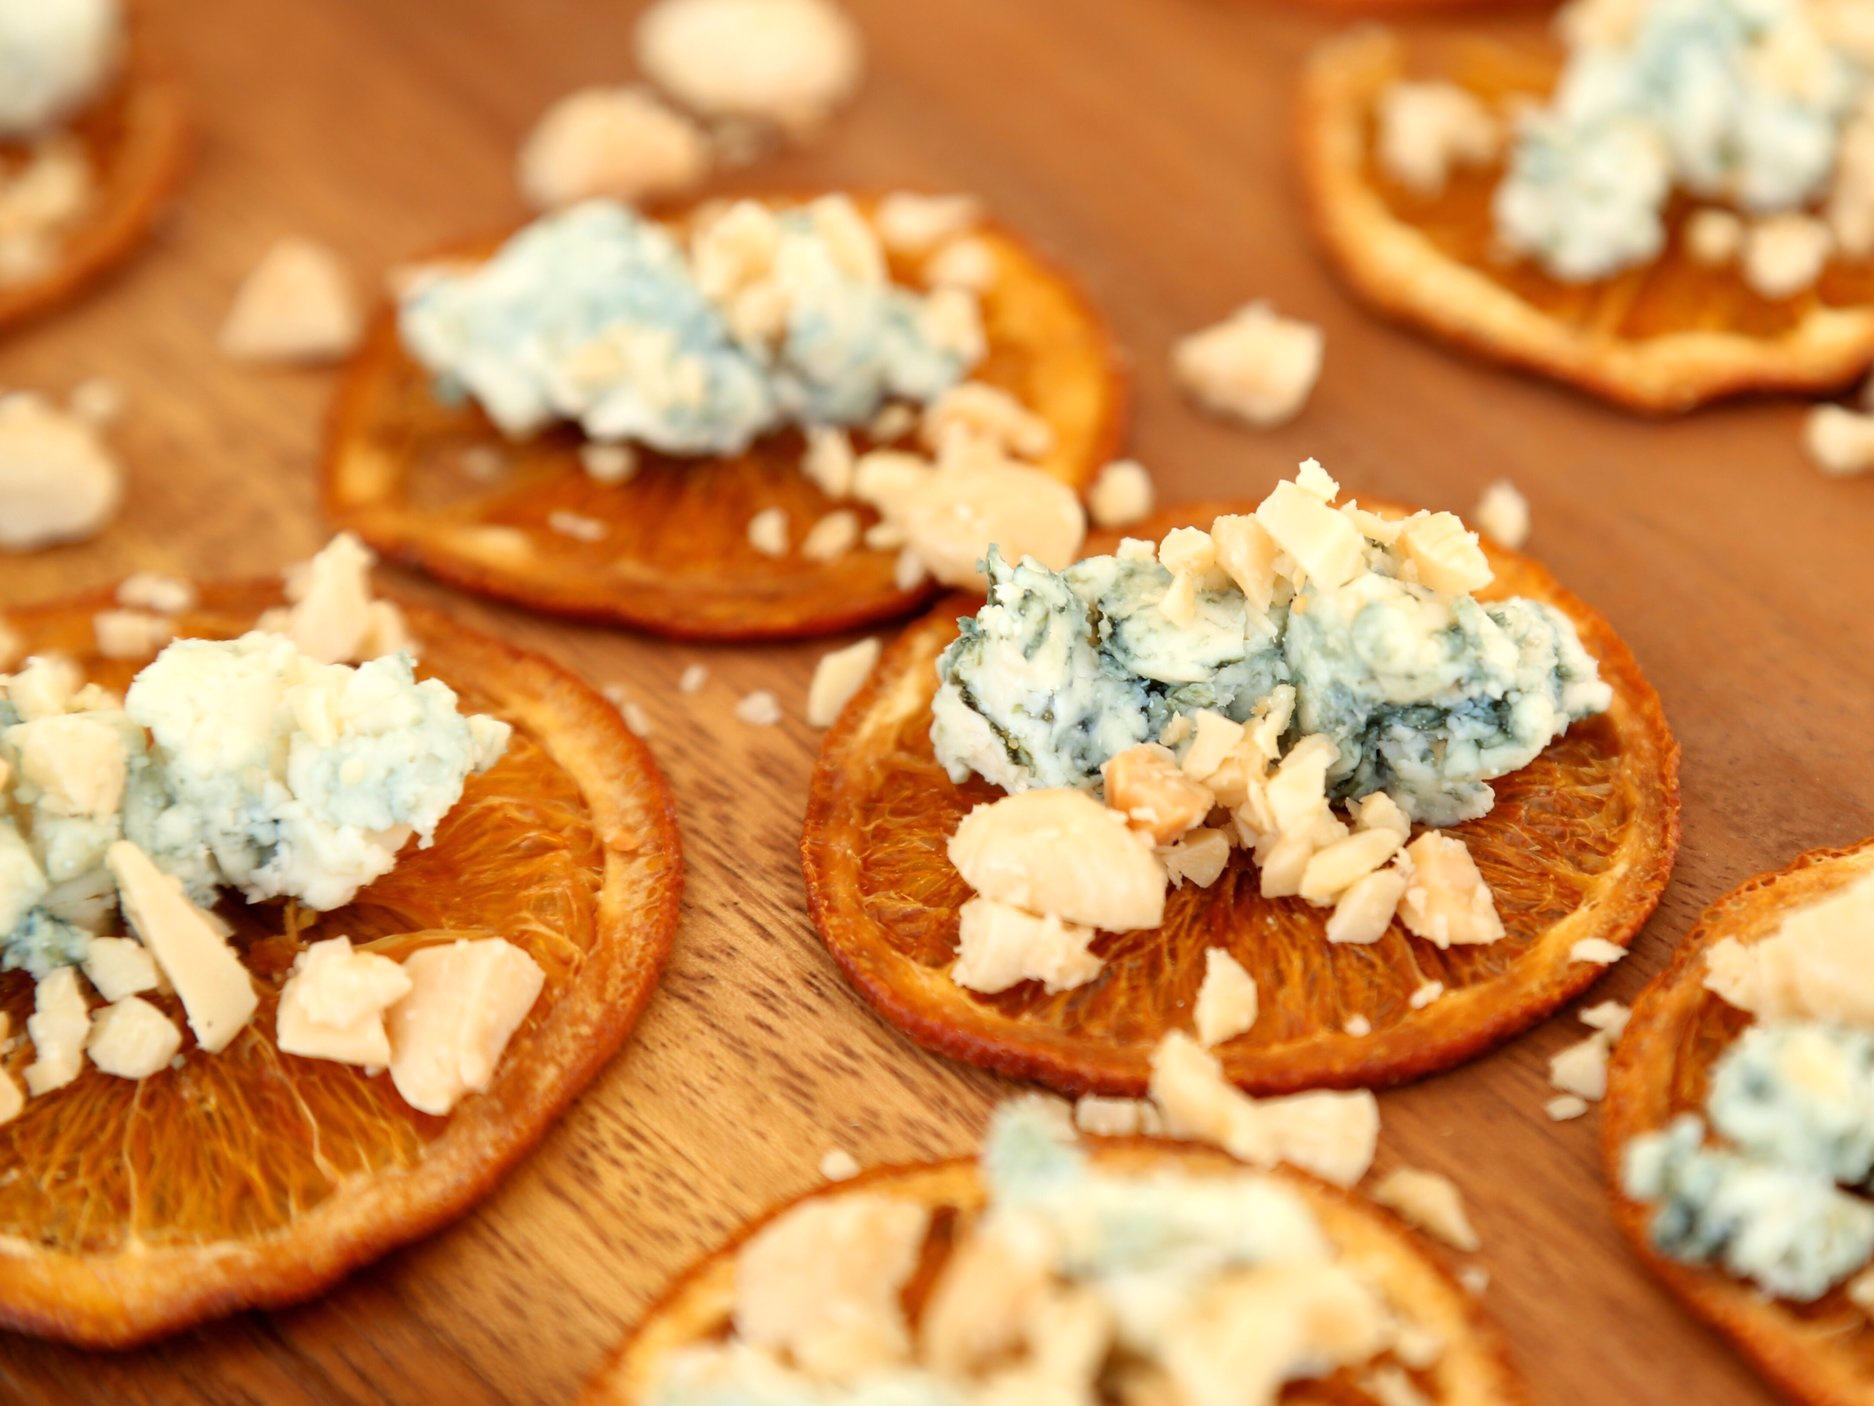 BLUE CHEESE & MARCONA ALMOND